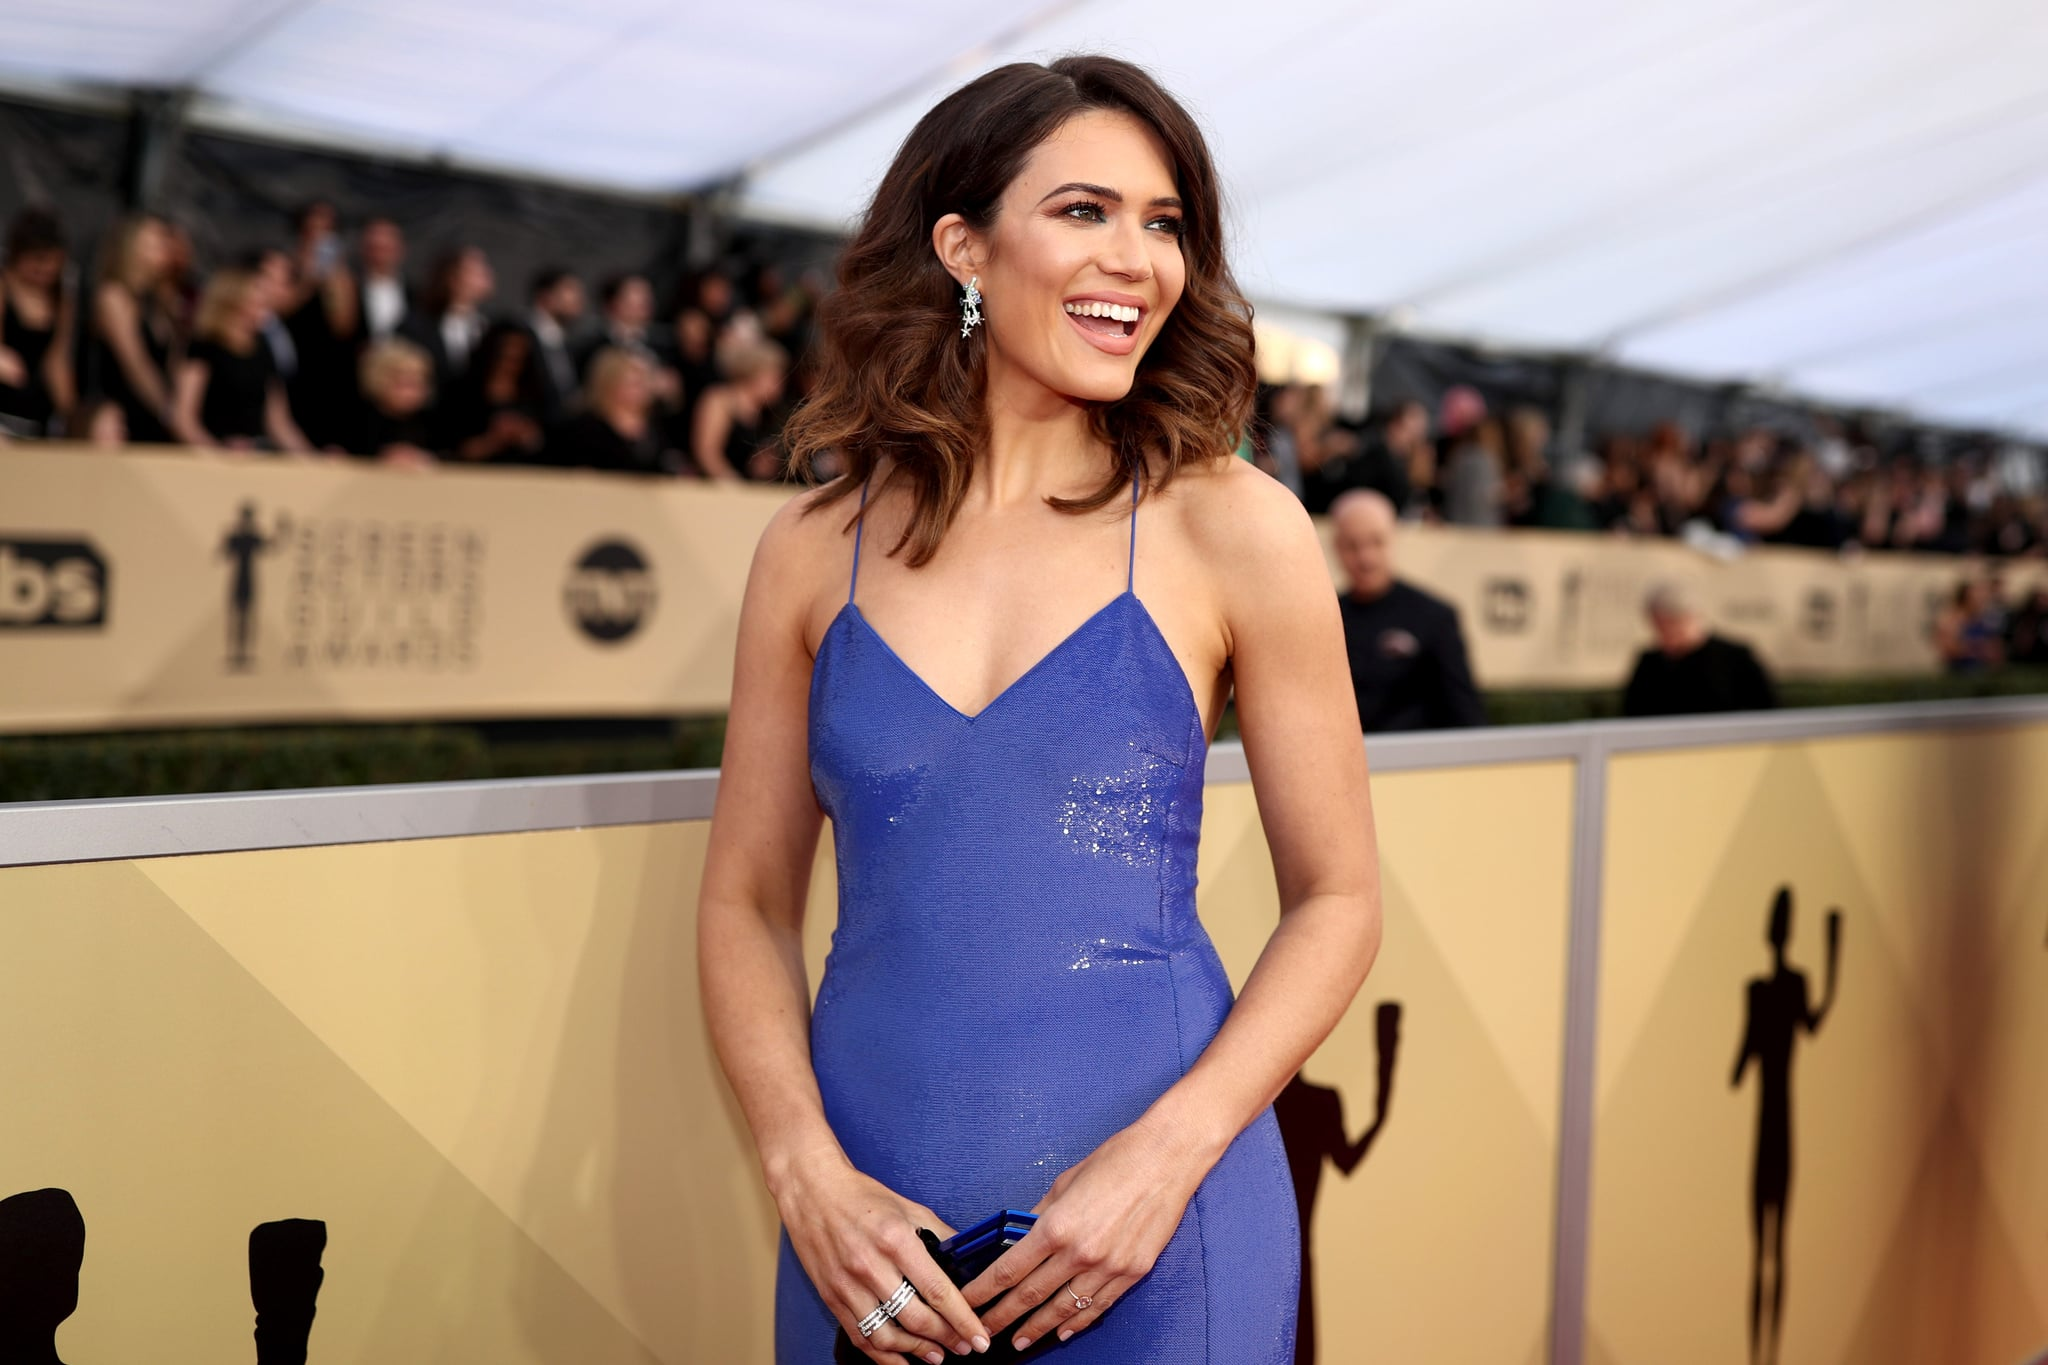 LOS ANGELES, CA - JANUARY 21:  Actor Mandy Moore attends the 24th Annual Screen Actors Guild Awards at The Shrine Auditorium on January 21, 2018 in Los Angeles, California. 27522_010  (Photo by Christopher Polk/Getty Images for Turner)